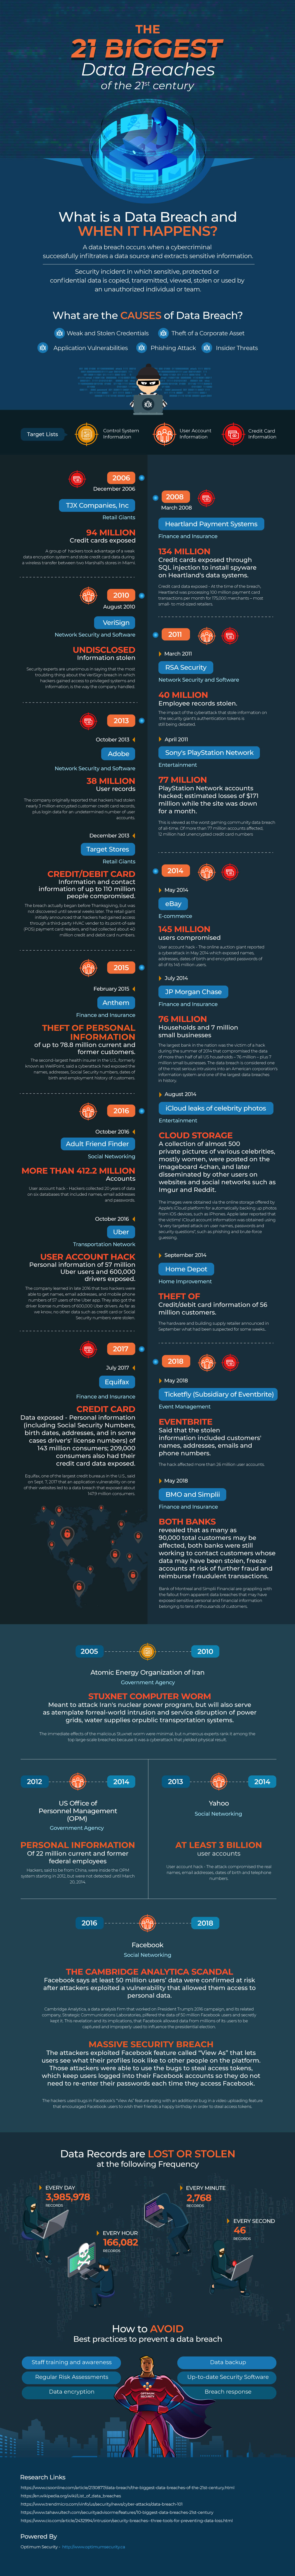 21st Century Data Breaches that Shook Industry and Trust - Infographic